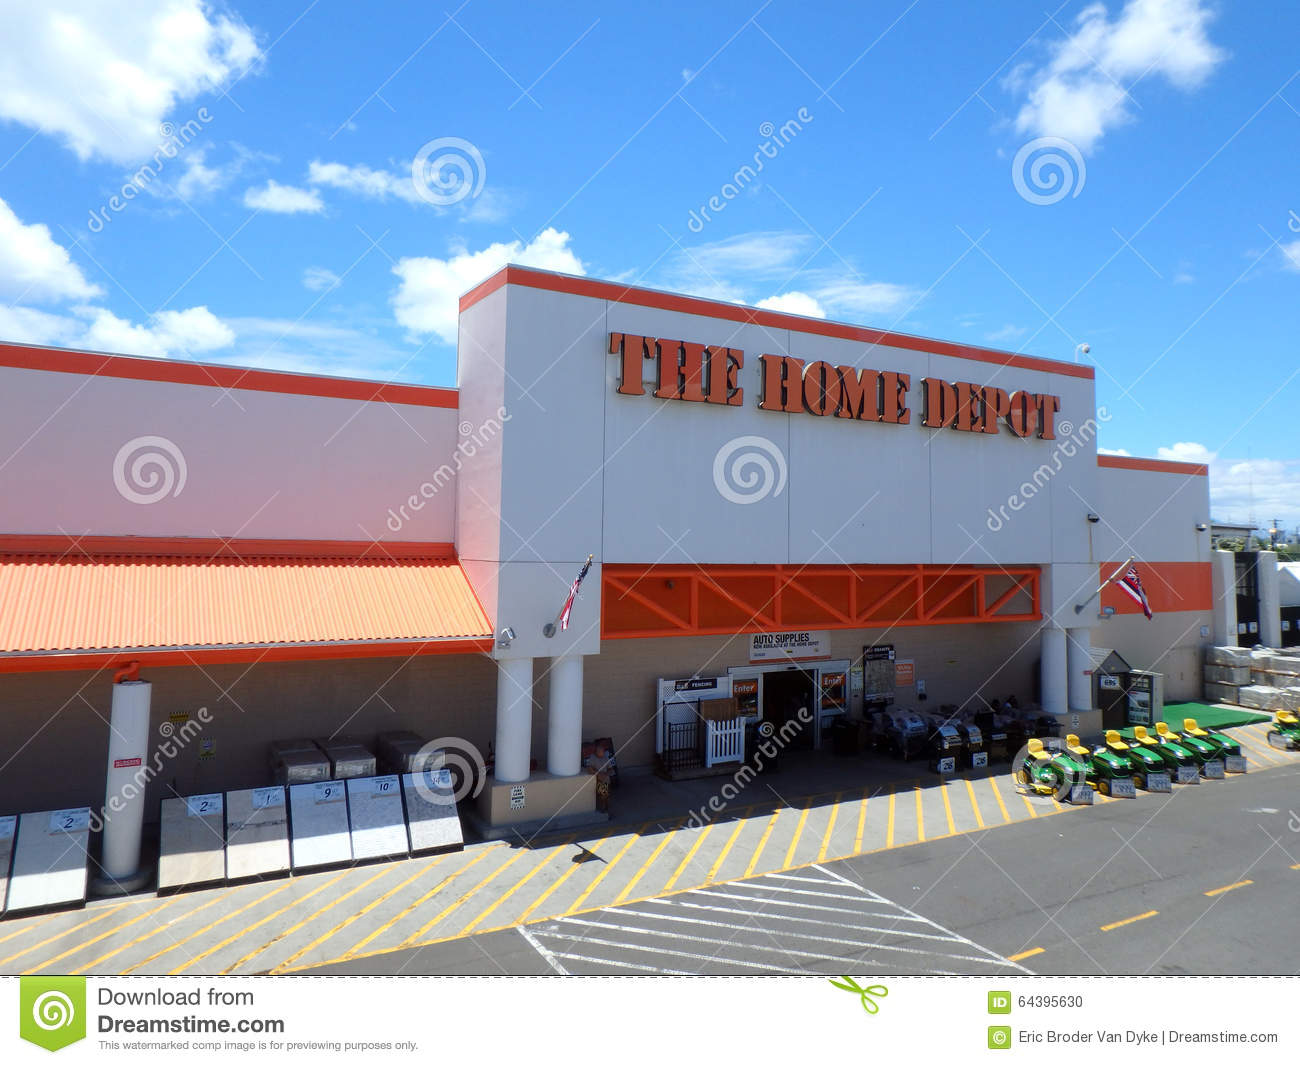 Oahu Home Depot Editorial Image Image Of Retail Building 64395630